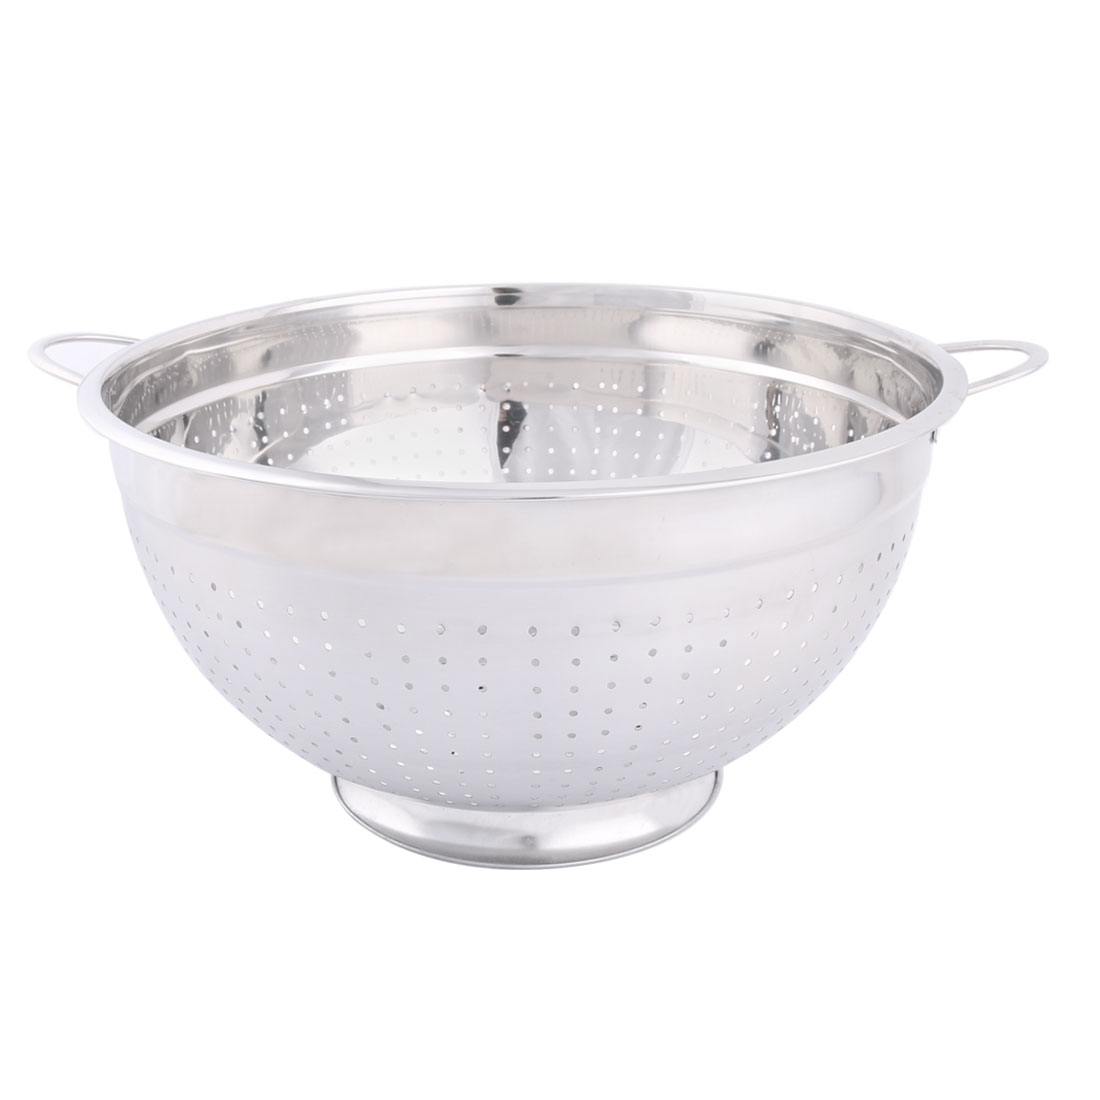 Household Stainless Steel Fruit Vegetable Nuts Drain Basket Silver Tone 34cm Dia